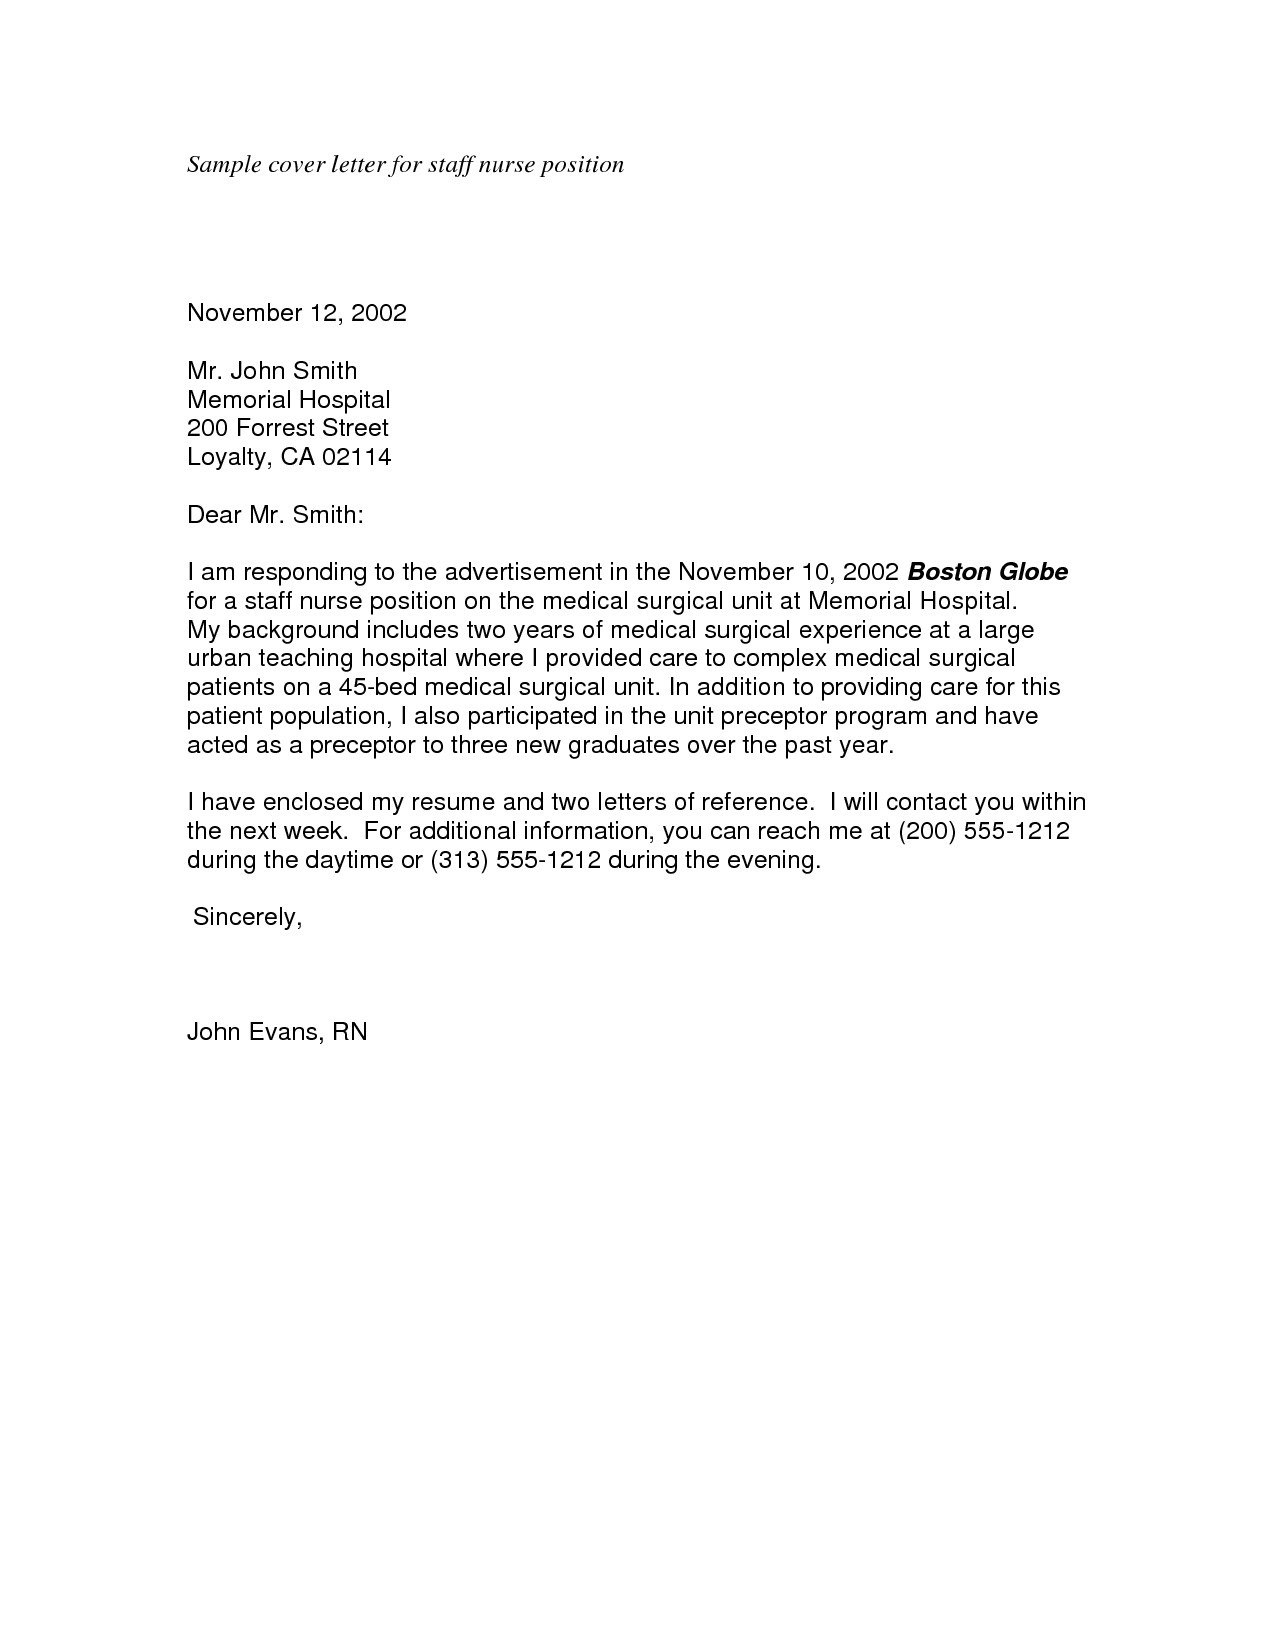 Apple Cover Letter Template - Example Cover Letters for Resume Best Cover Letter for Resume